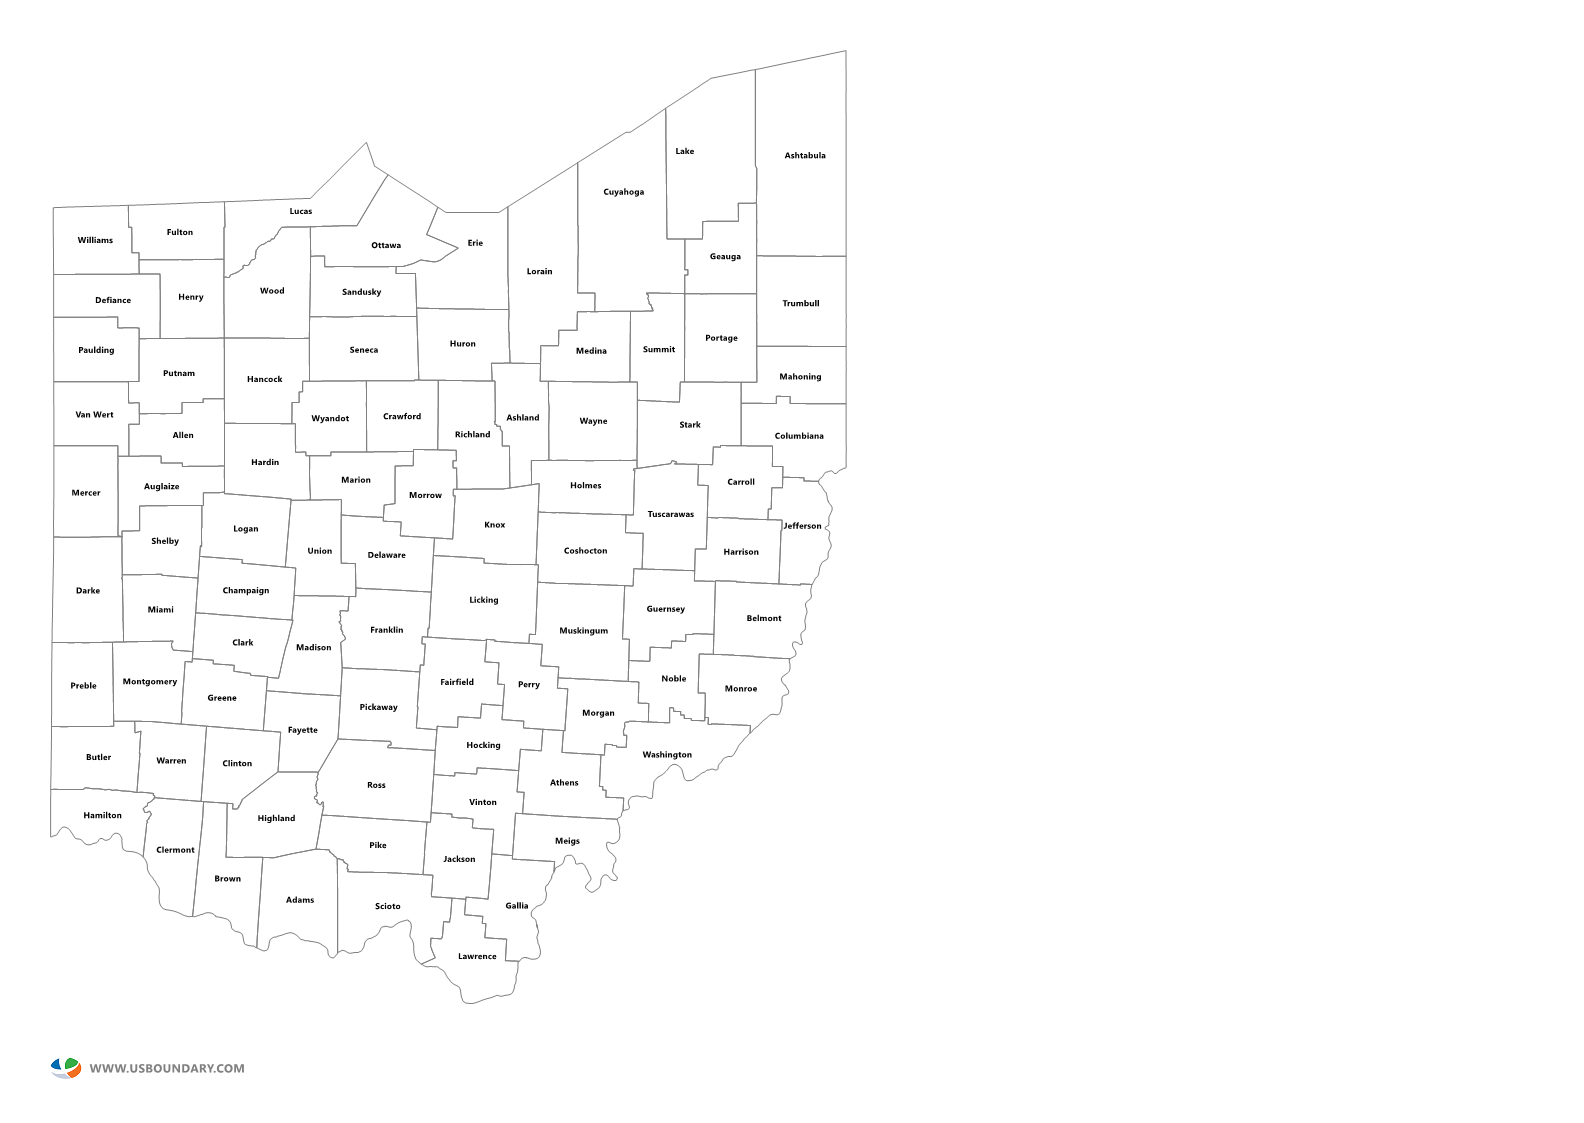 State Counties Maps Download - County maps of ohio